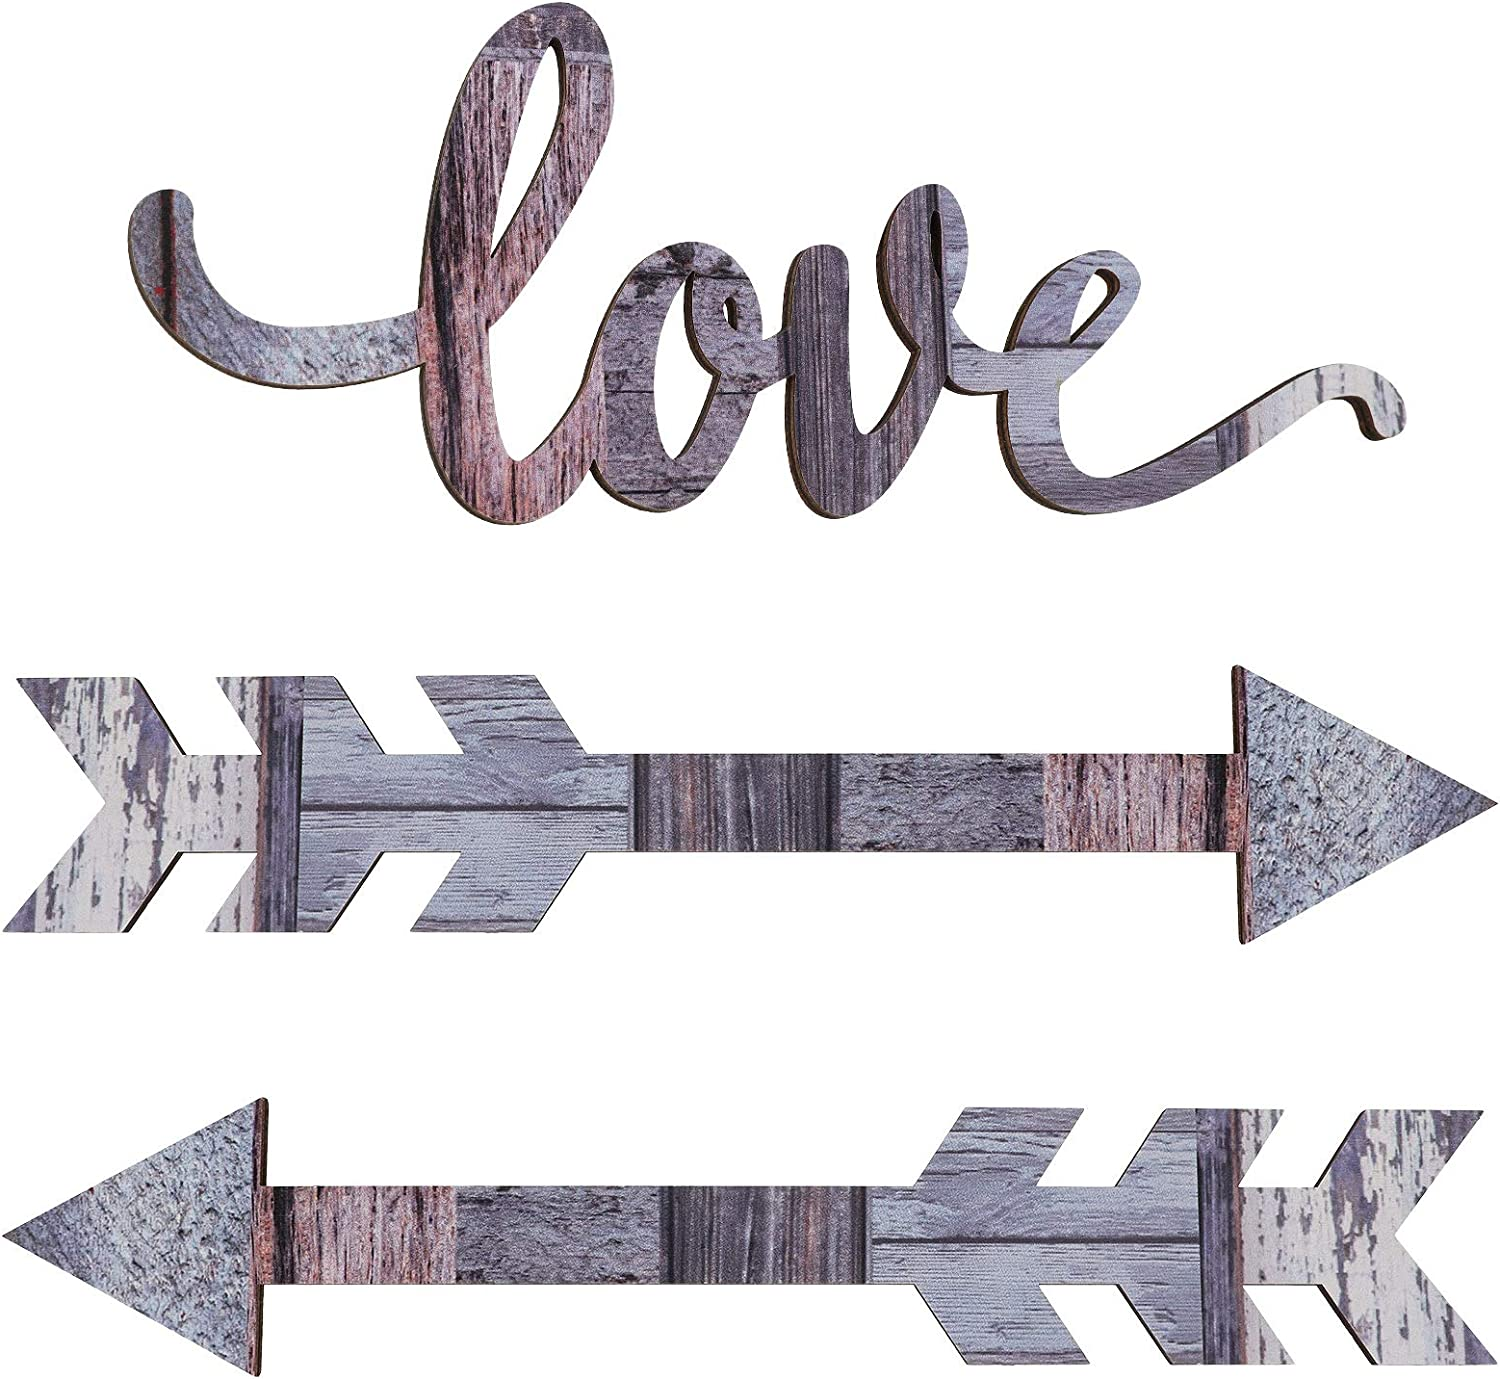 Jetec Wood Arrows Wall Decor Love Wooden Sign Rustic Wood Arrow Sign Decoration for Home Farmhouse Living Room Kitchen Dining Bedroom Bathroom (Chic Color)